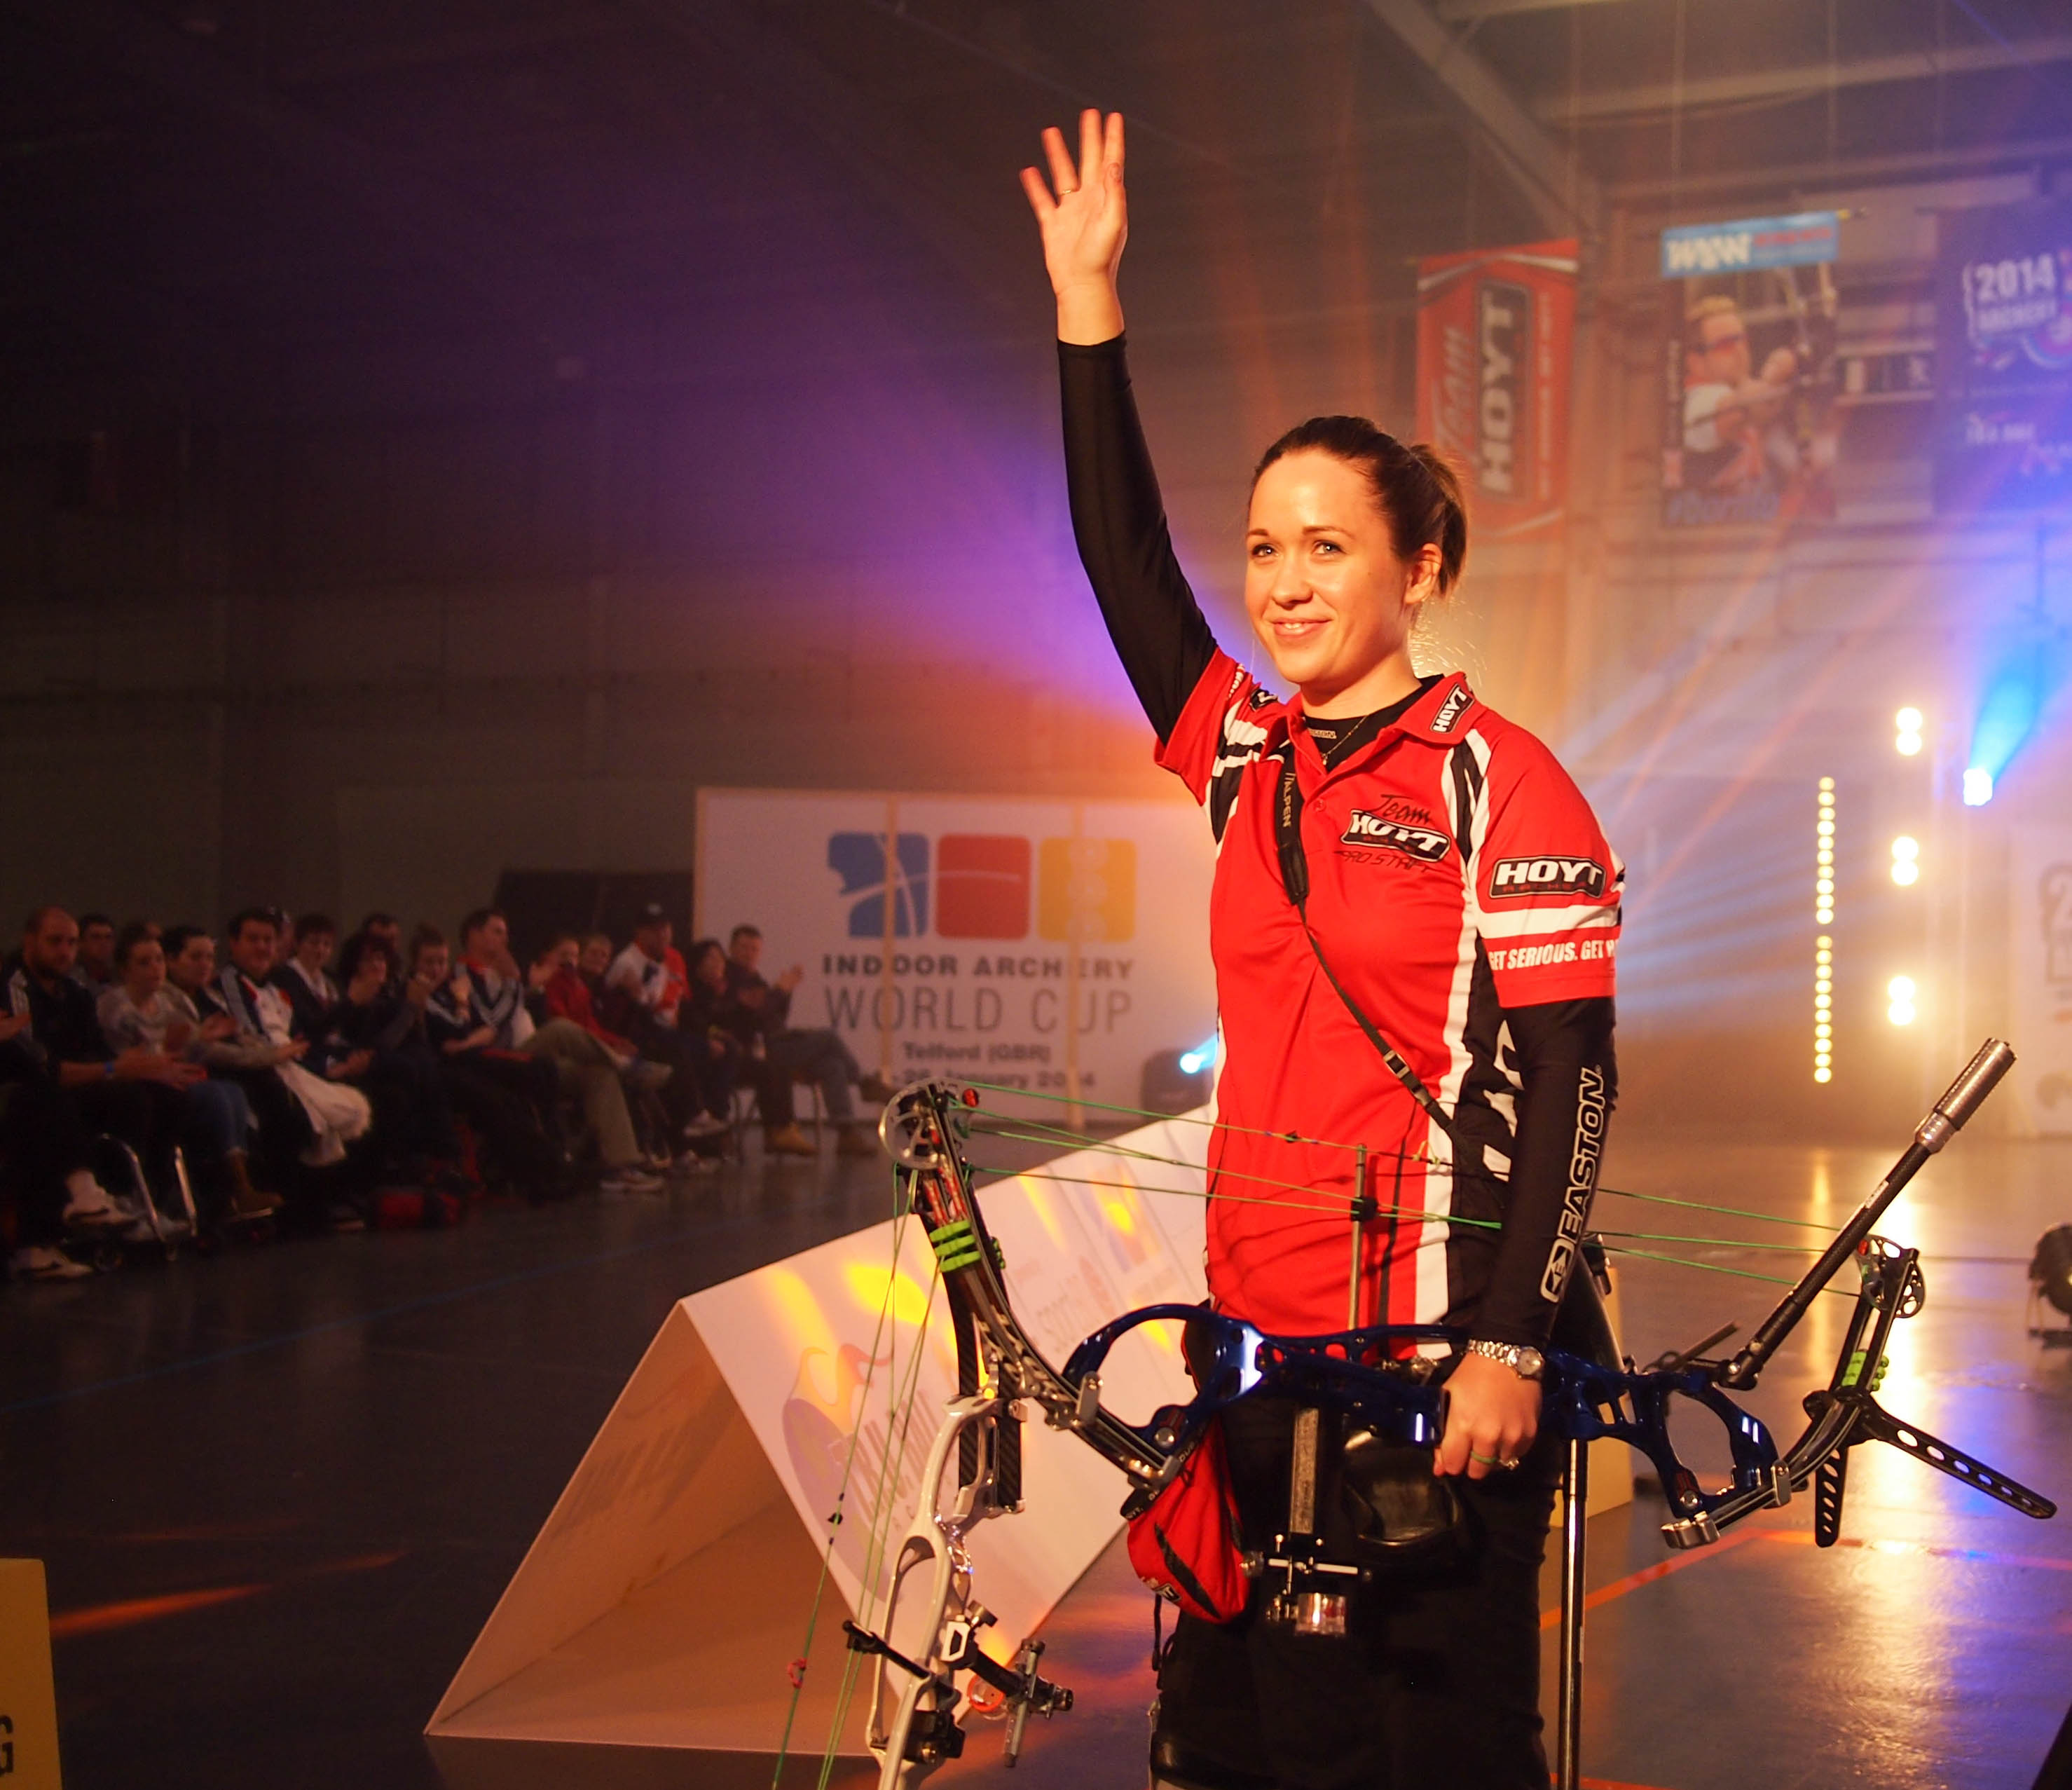 Erika Jones at the 2014 European Archery Festival. © 2014 The Infinite Curve